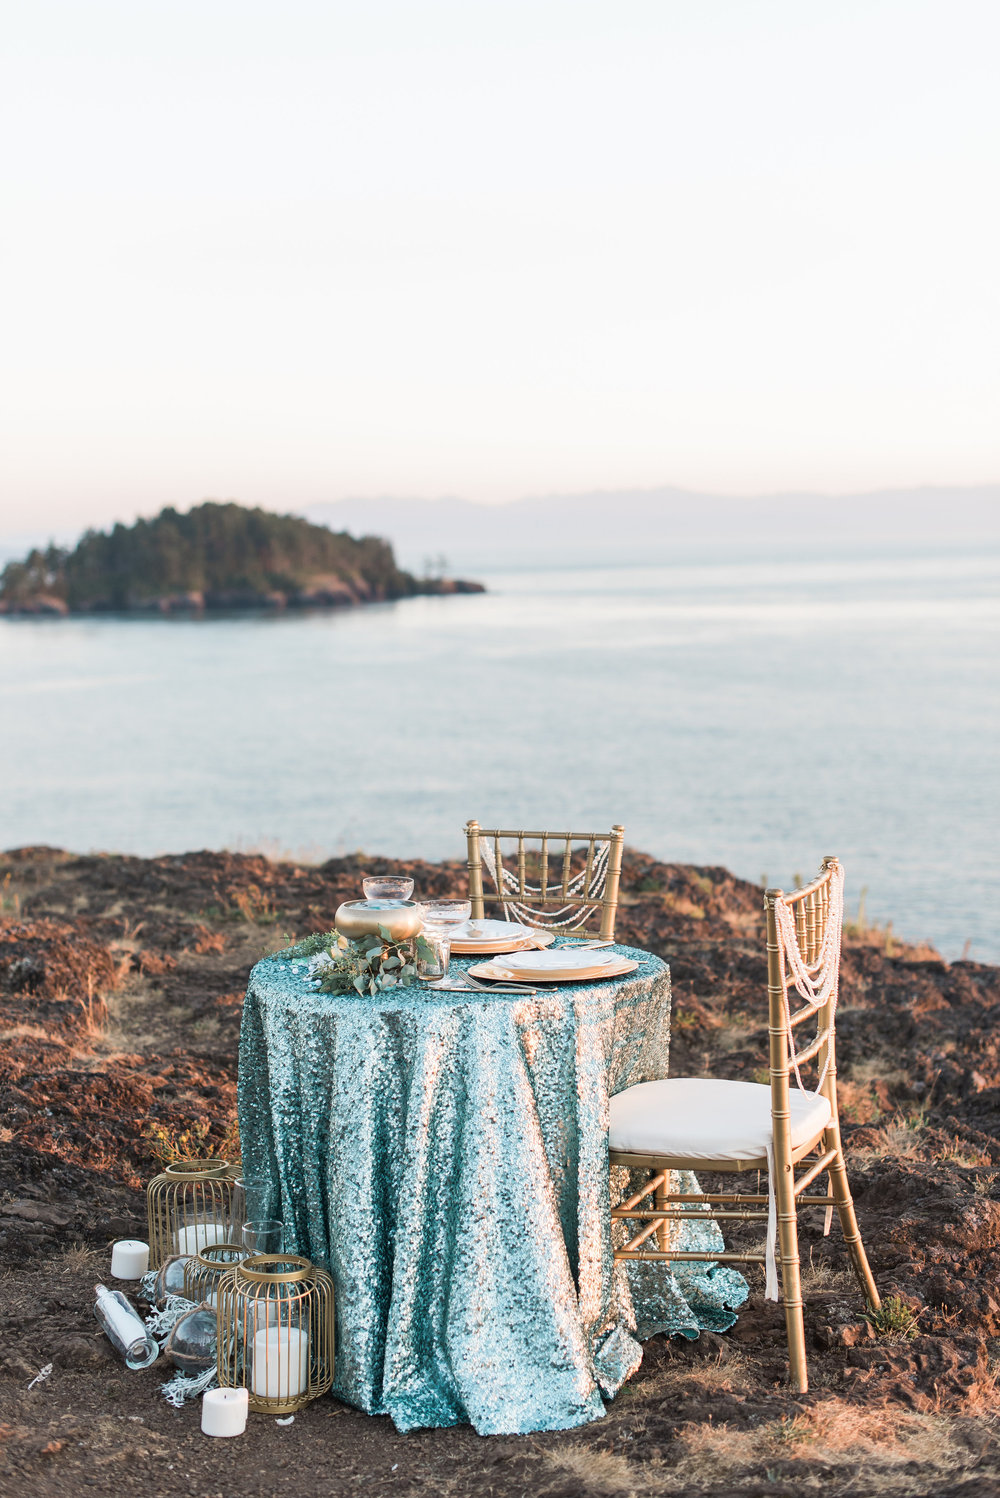 Planning a wedding in the San Juan Islands